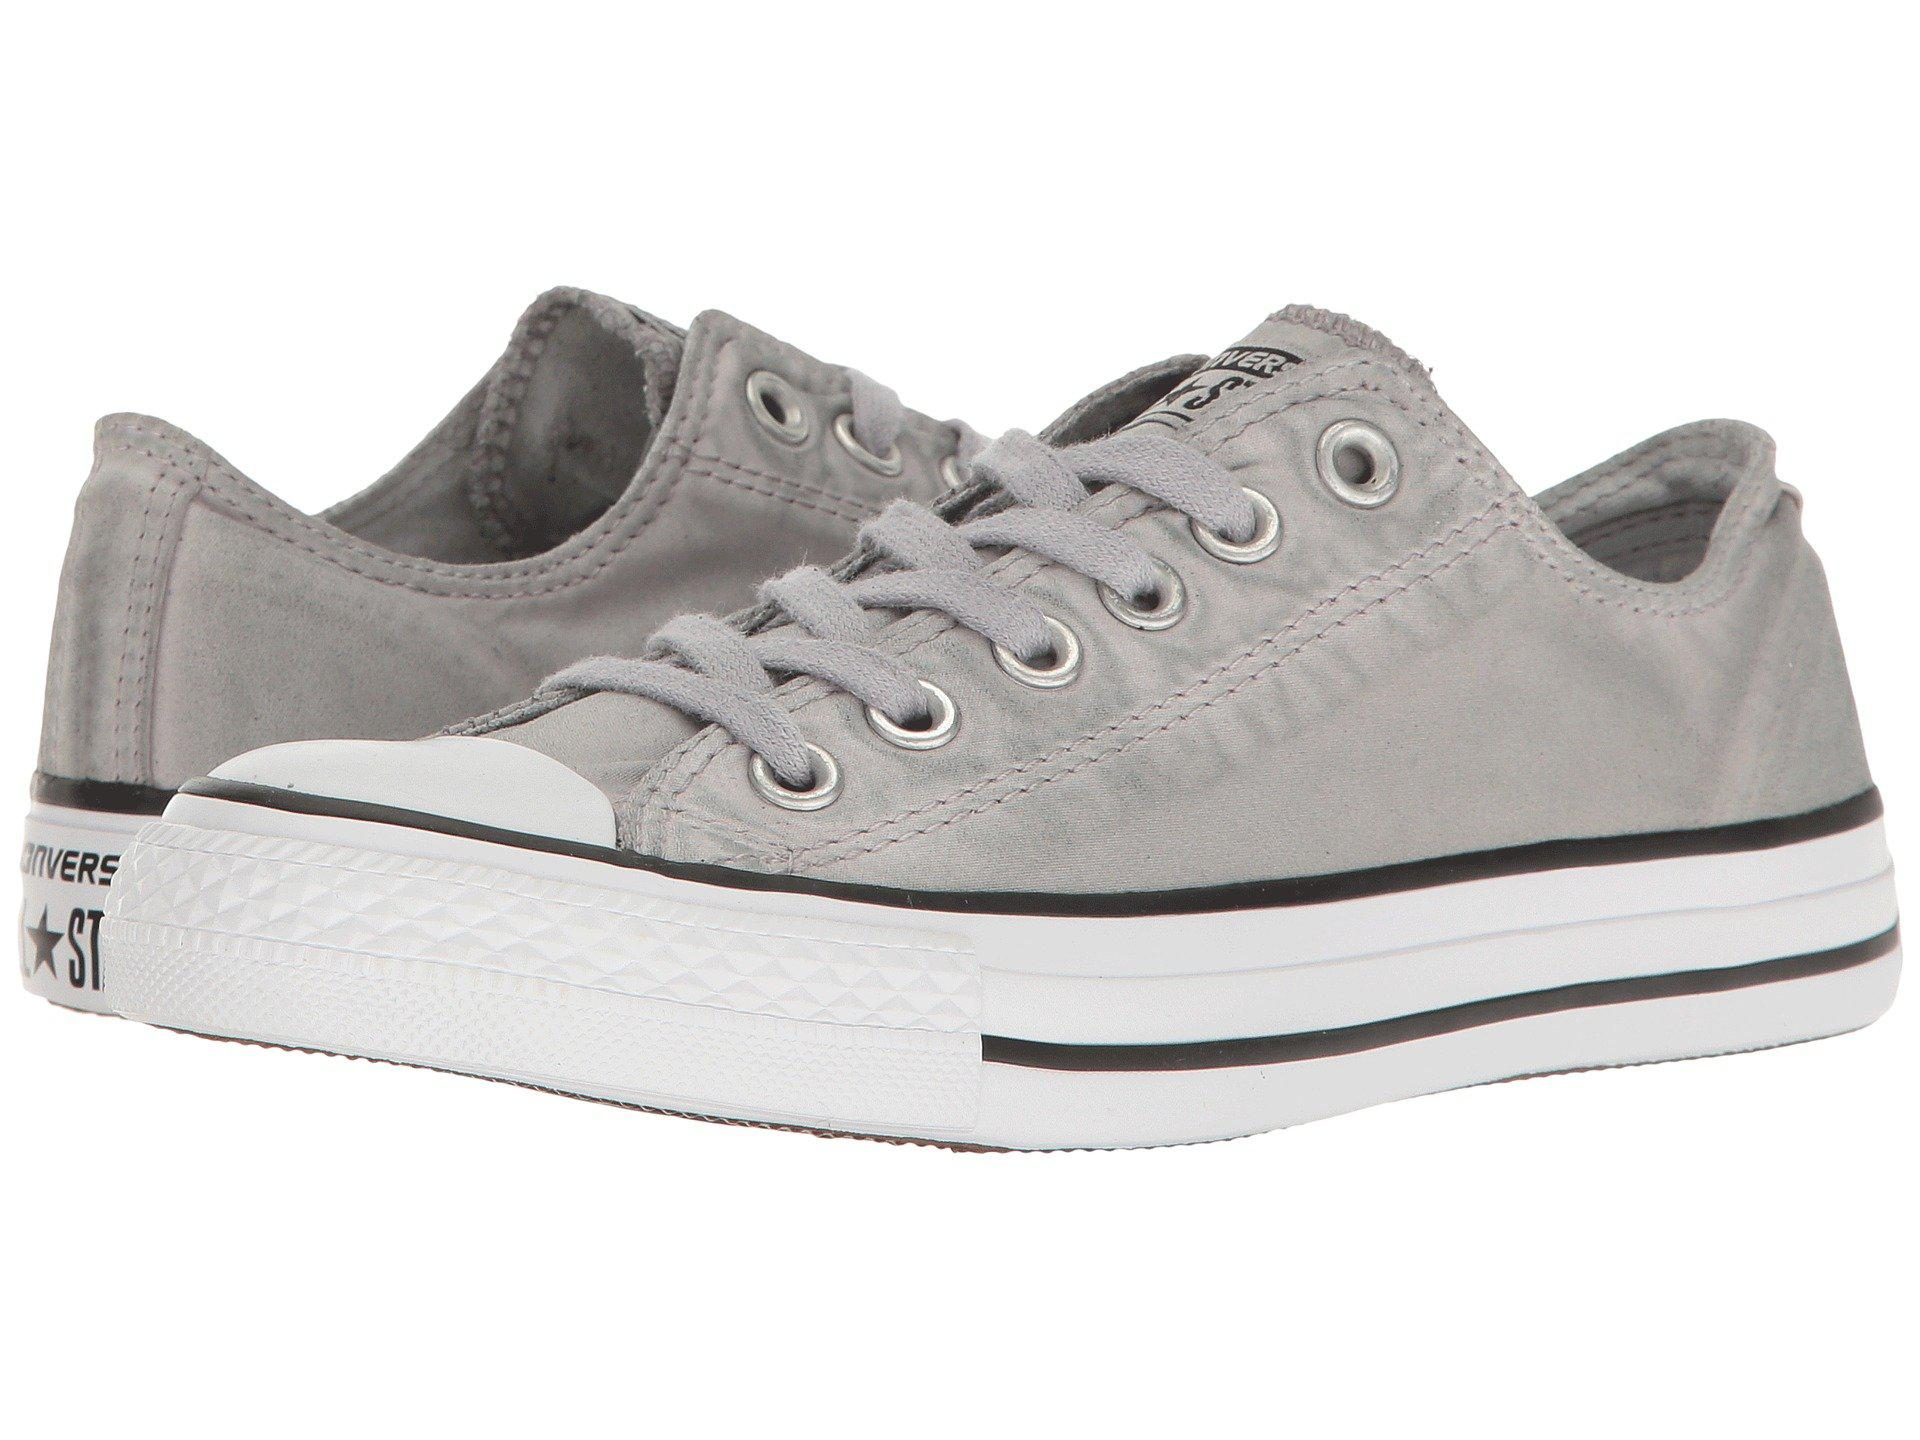 866215d1a79e Gallery. Previously sold at  6PM · Women s Converse Chuck Taylor ...